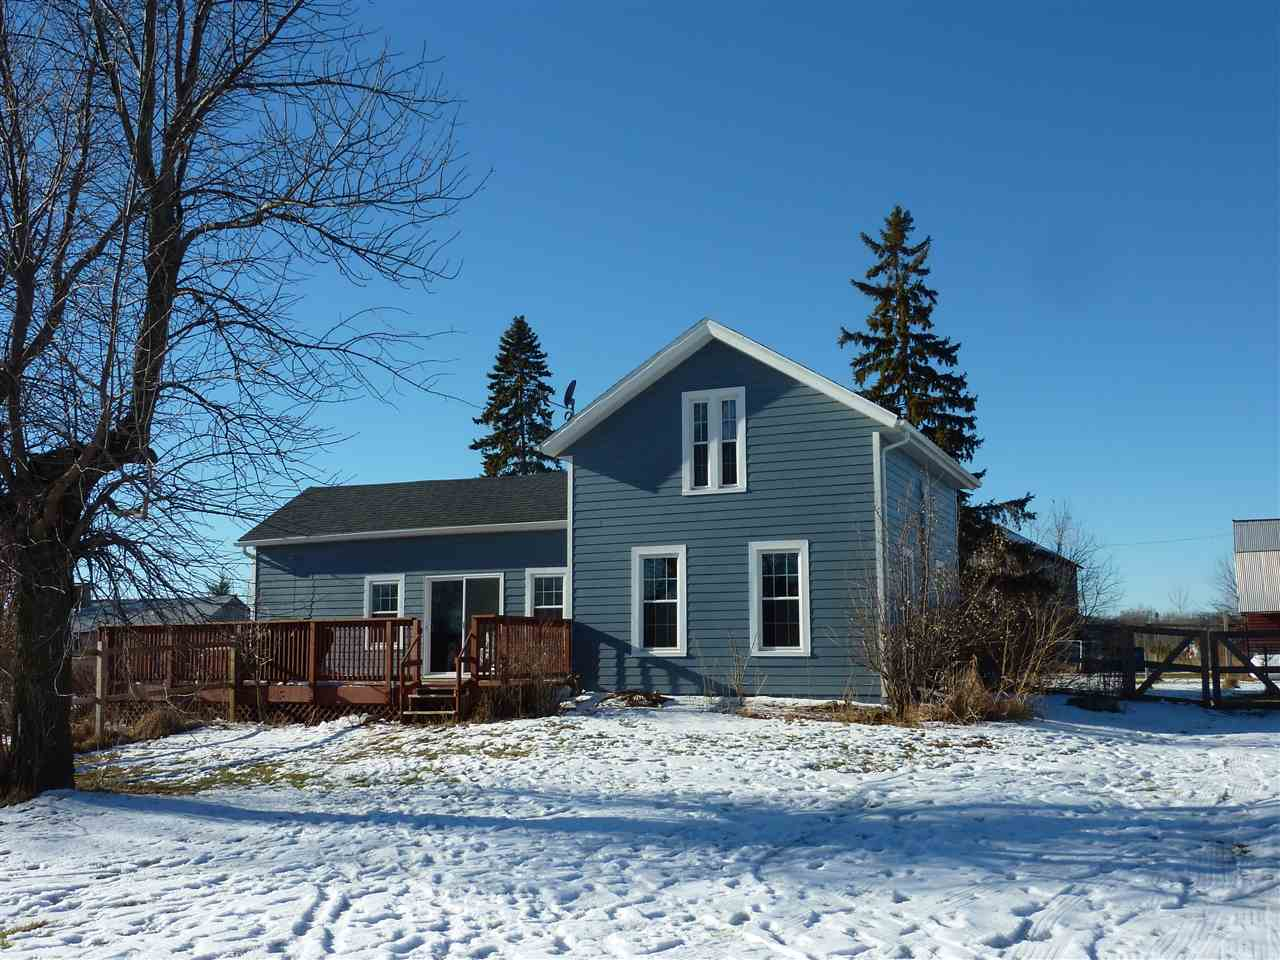 4505 BRODERICK Road,OMRO,Wisconsin 54963-9624,2 Bedrooms Bedrooms,1.1 BathroomsBathrooms,Residential,BRODERICK,50195893